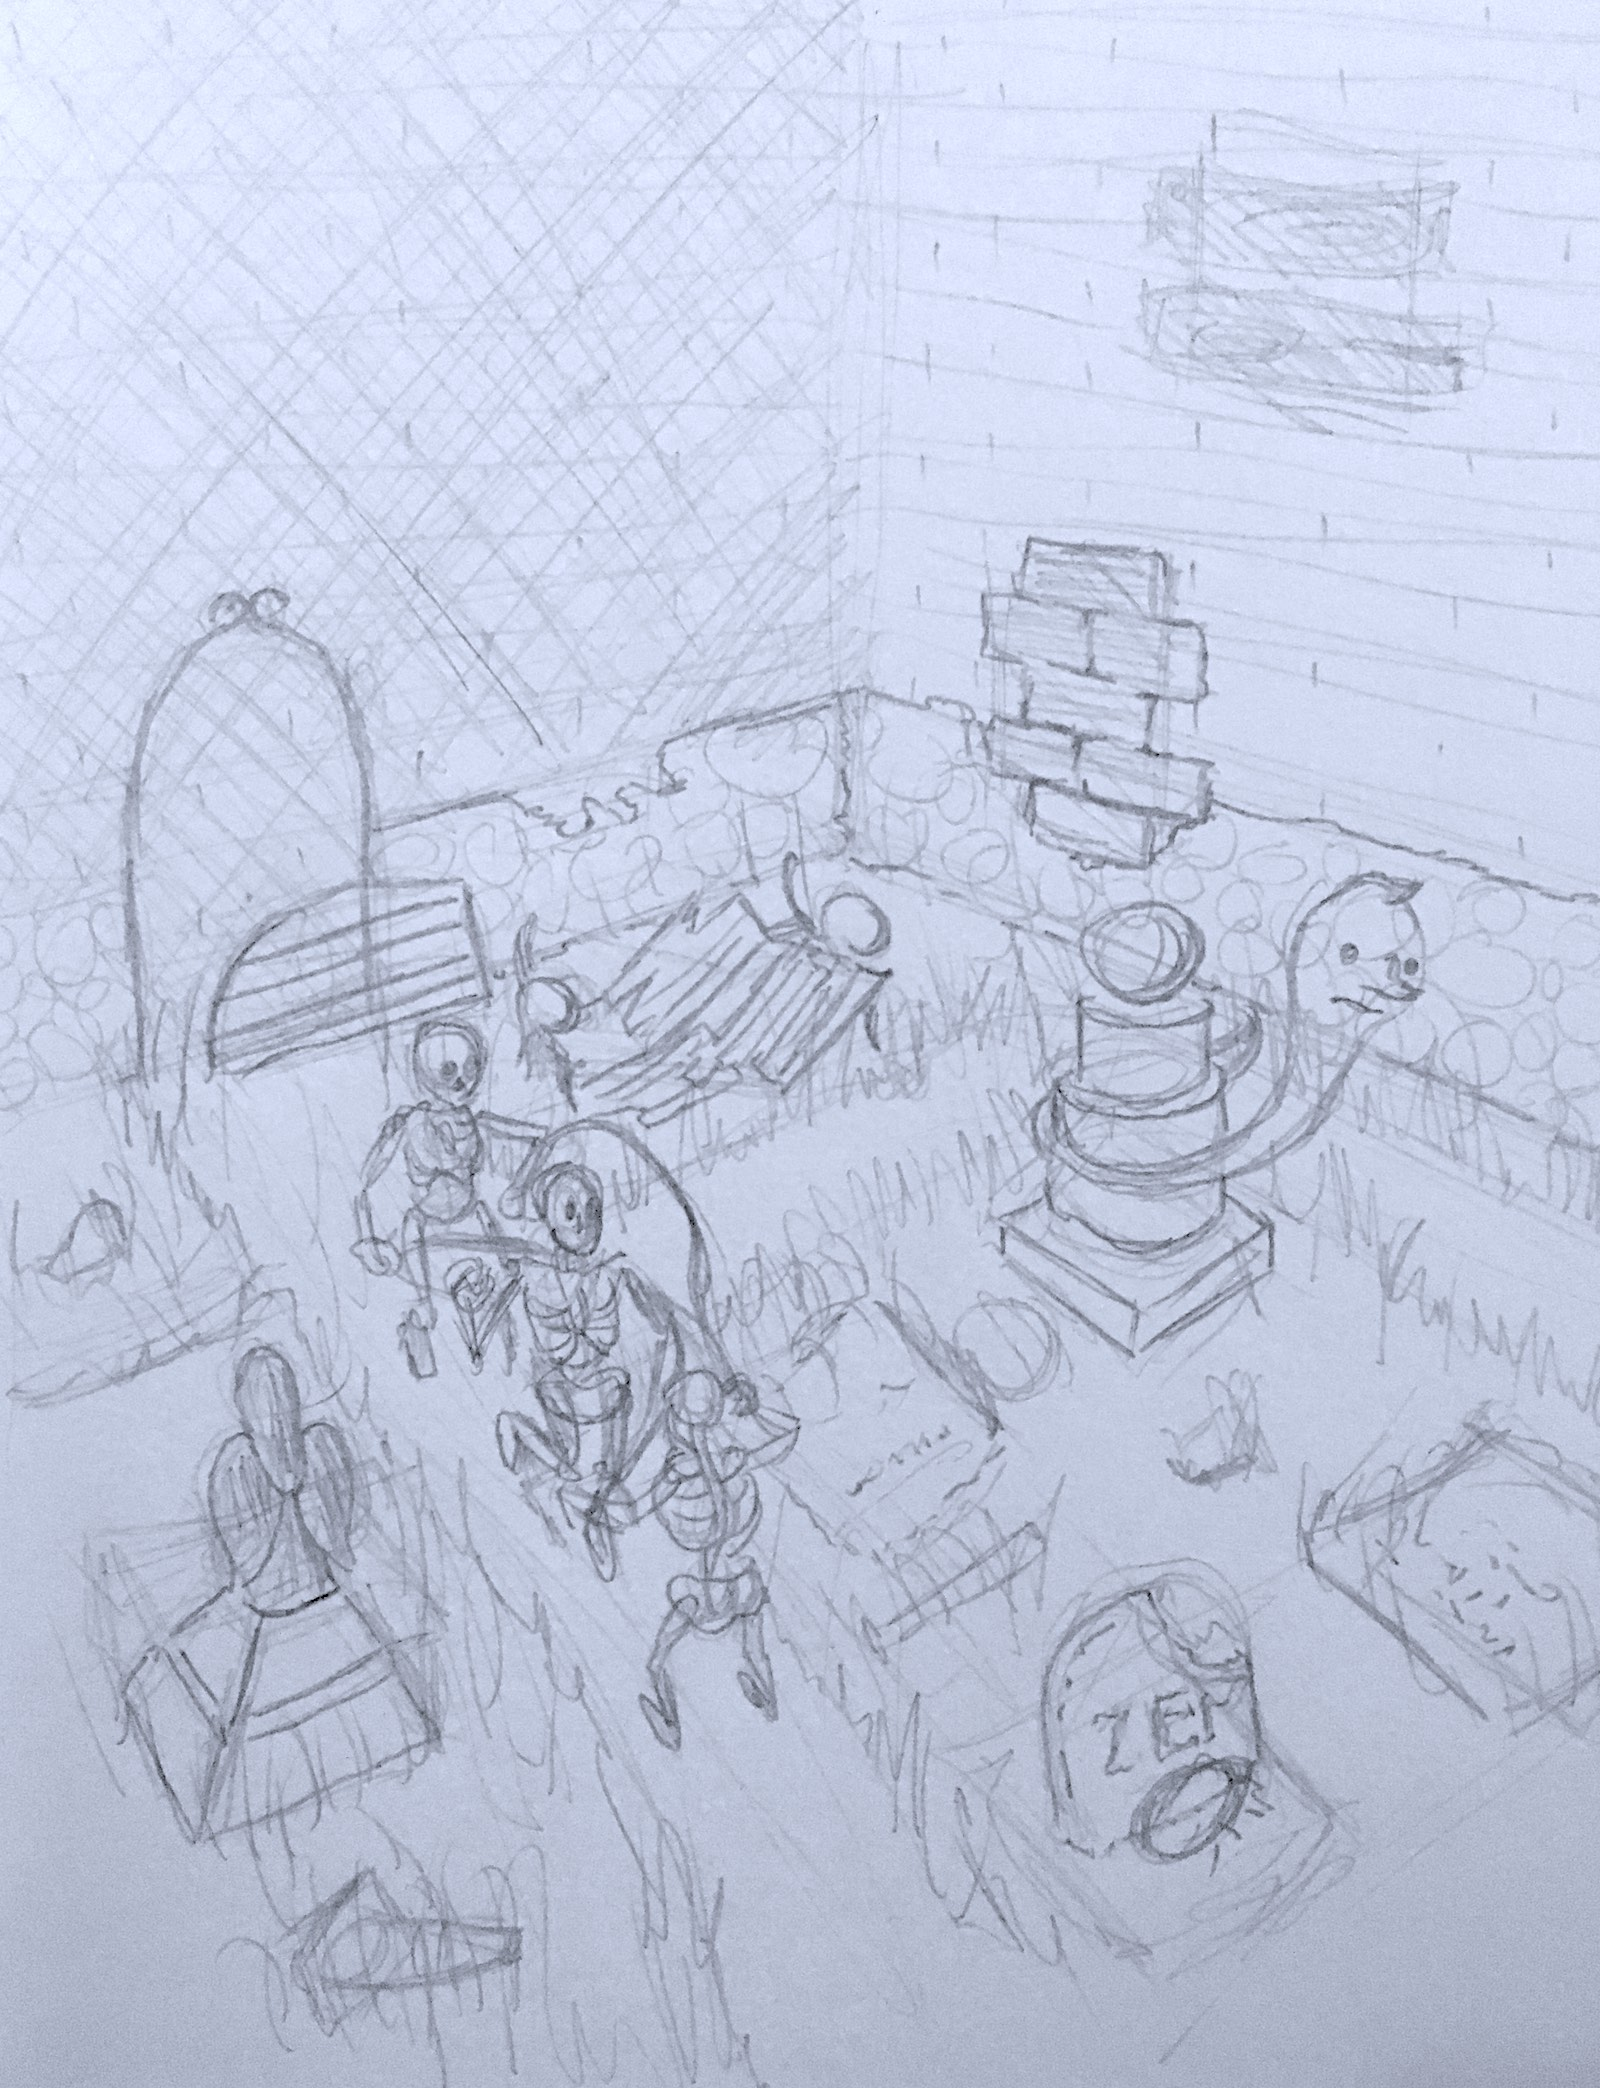 A sketch of scene 2, featuring skeletons jumping rope